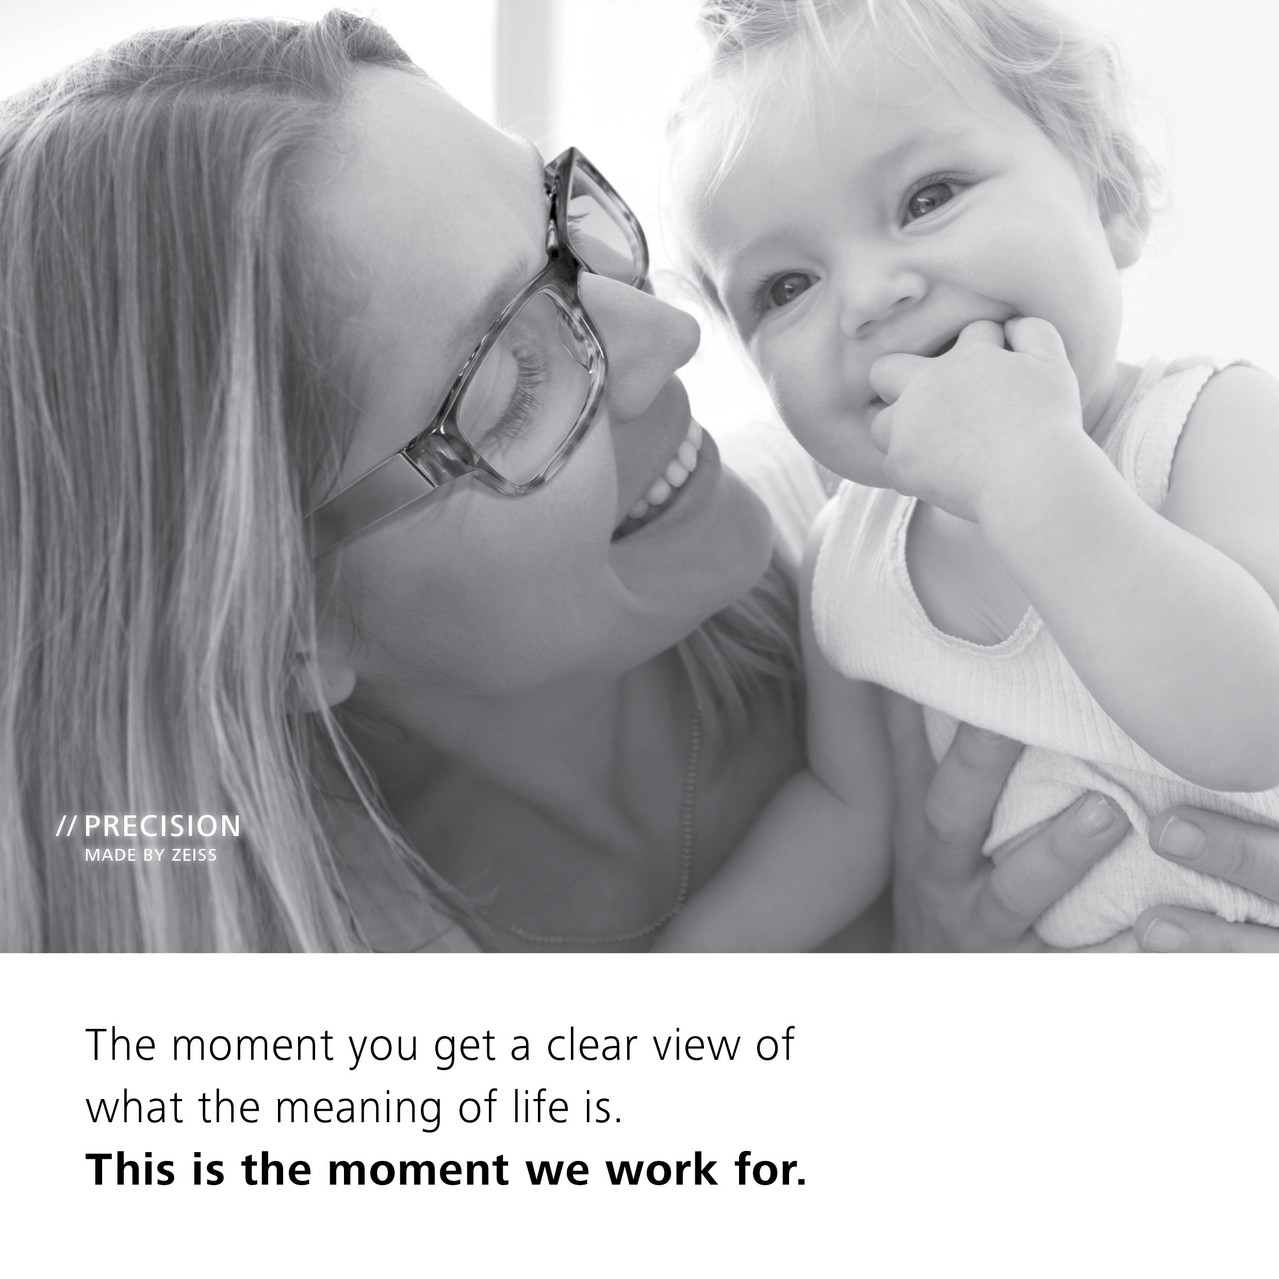 zeiss_brand_mom_baby_visual_portrait